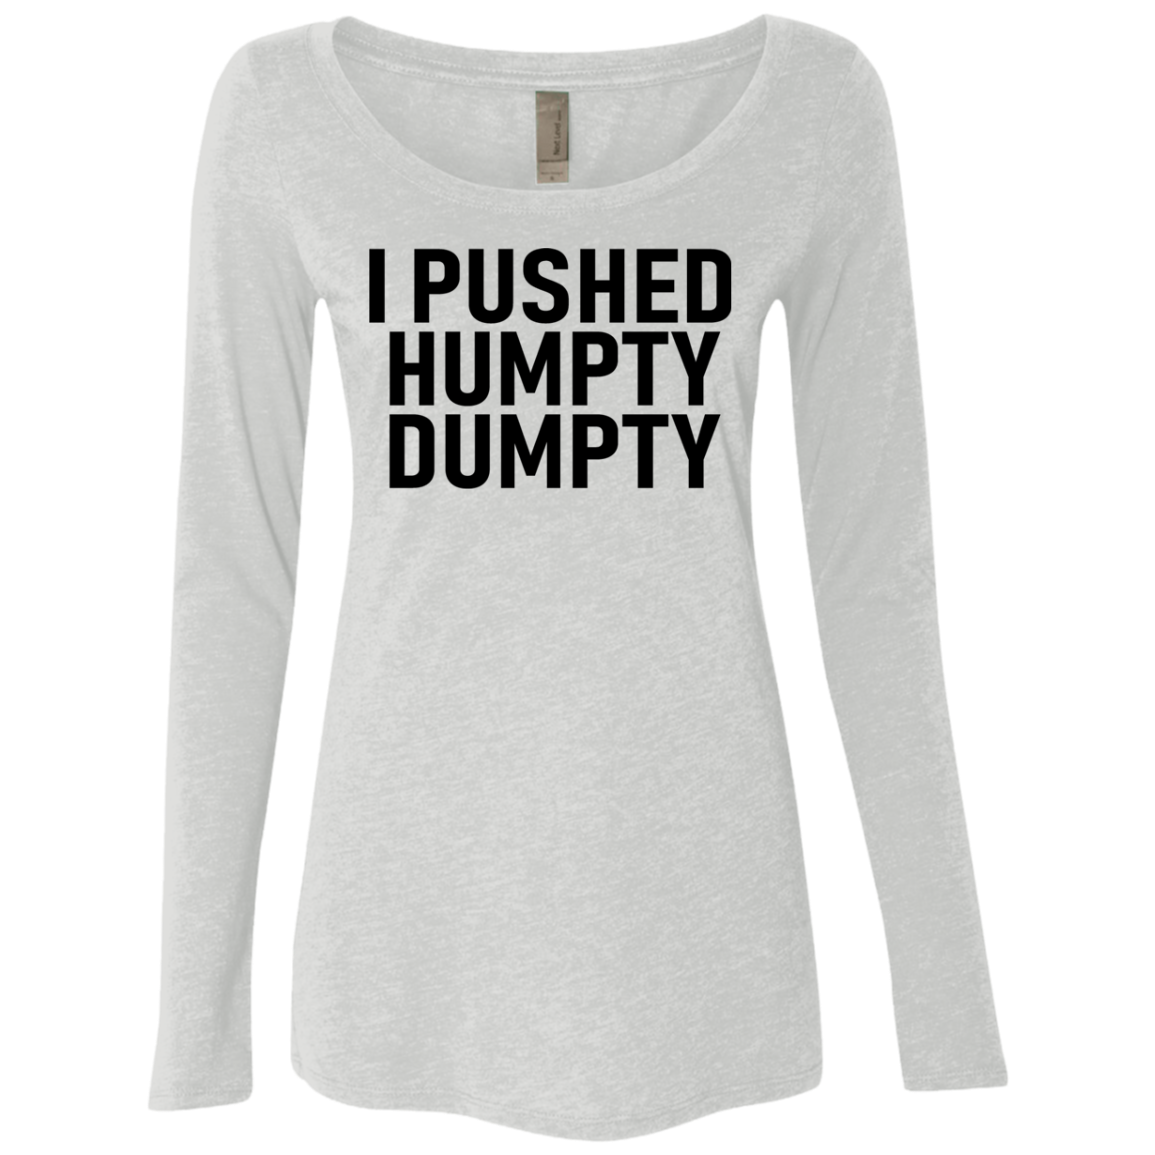 I Pushed Humpty Dumpty Women's Long Sleeve Tee